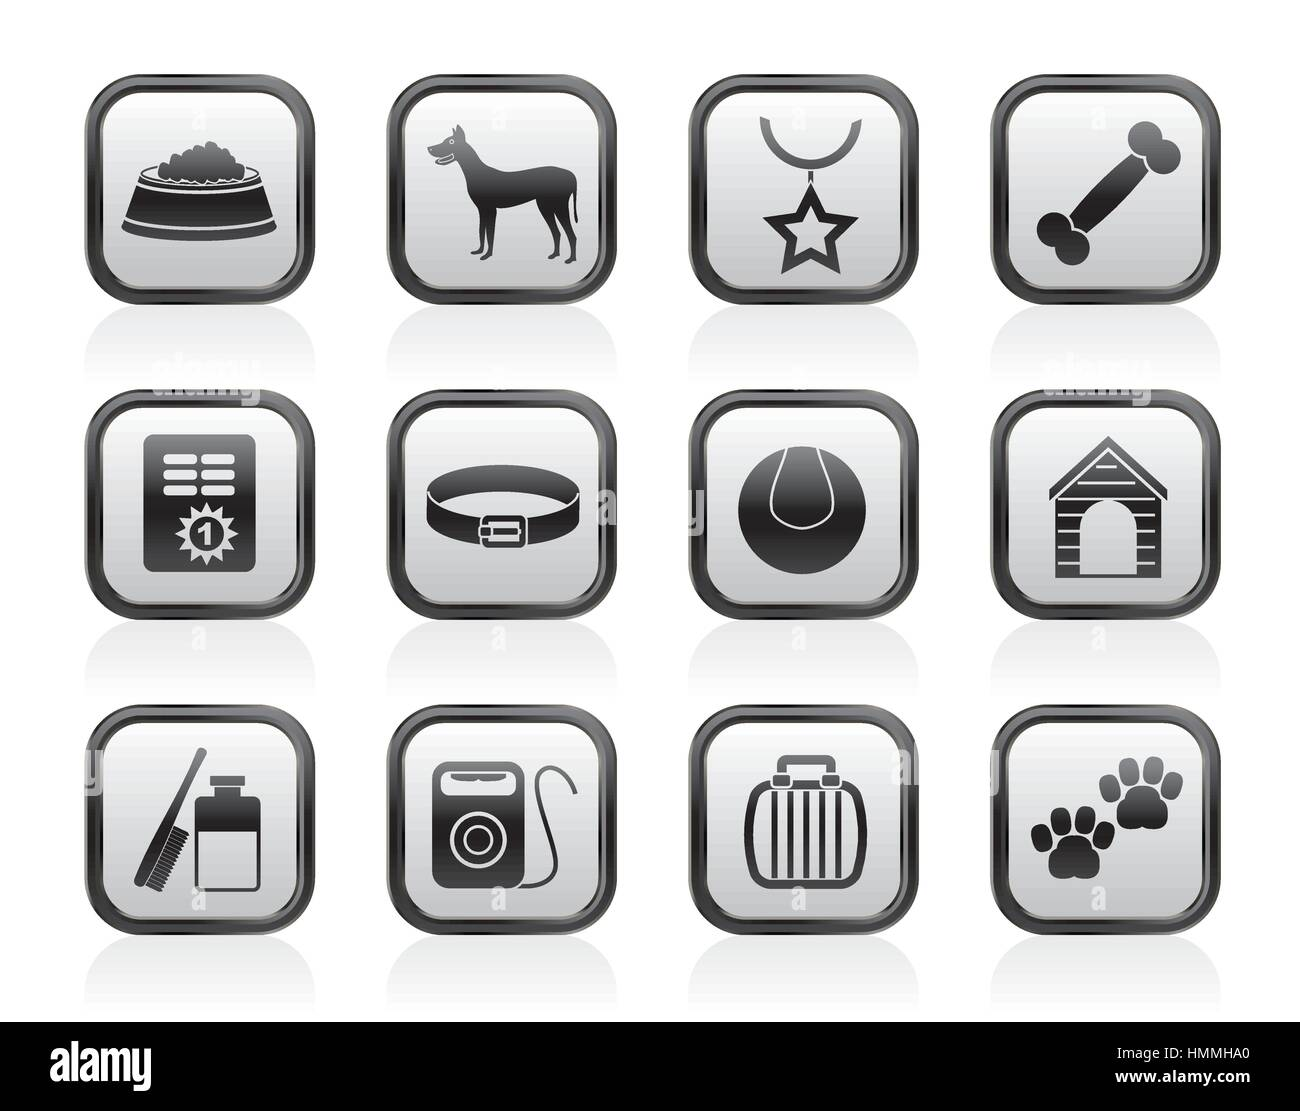 dog accessory and symbols icons - Stock Image